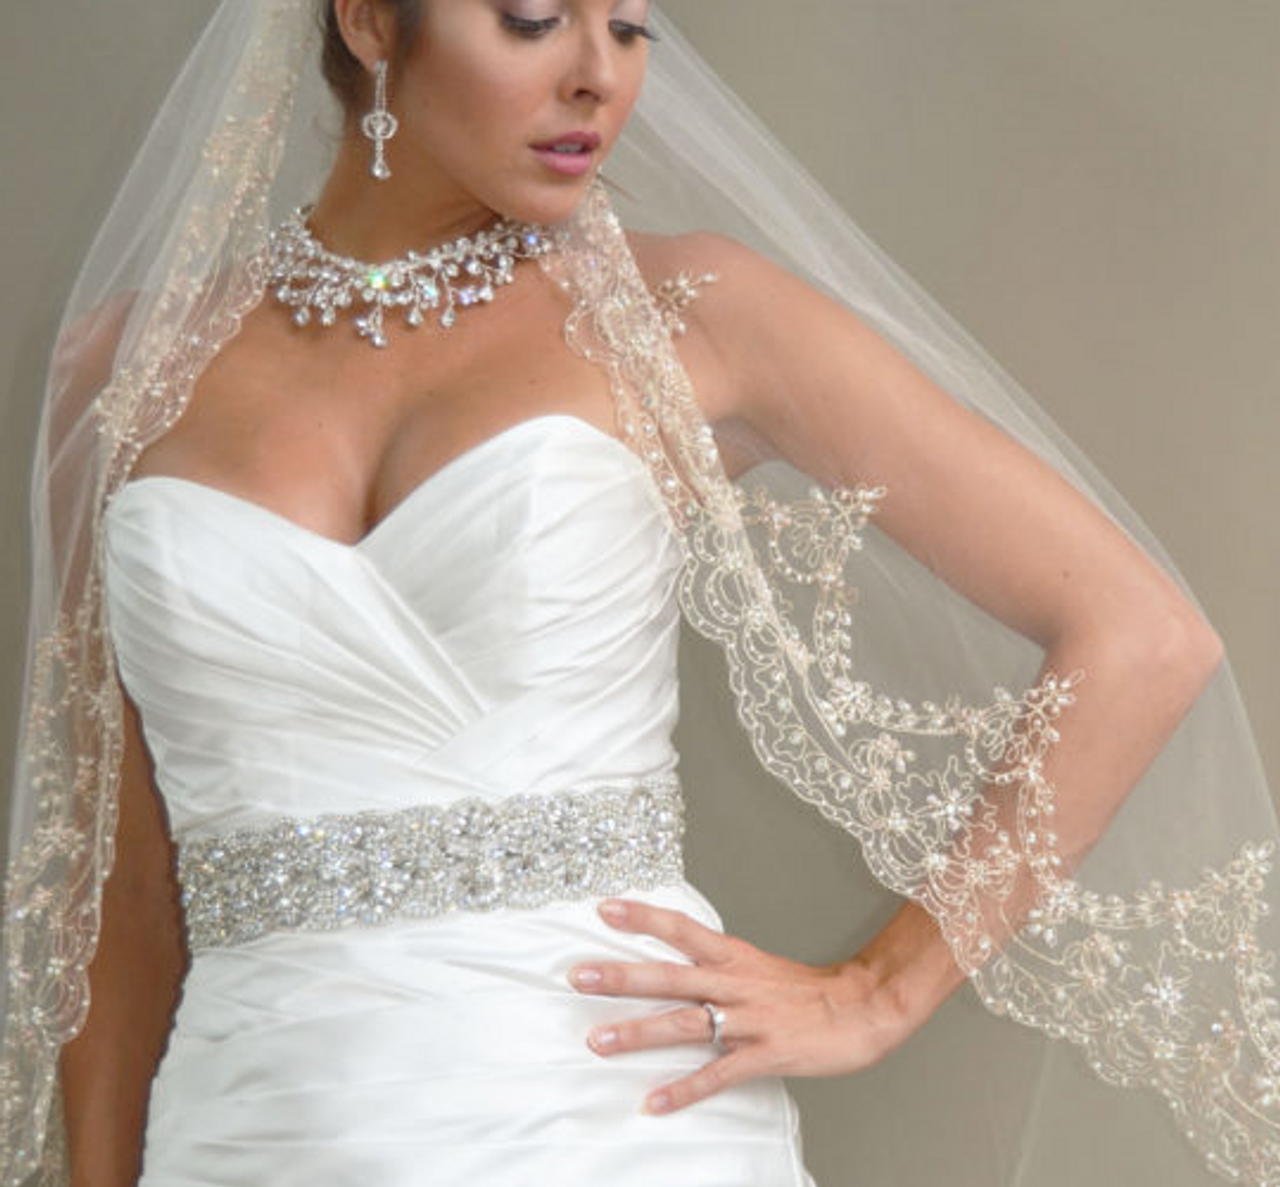 """Elena Designs Wedding Veil Style E1184L - 45"""" Inches - Gold Embroidered - Champagne Beads - Pearls - Sequins"""